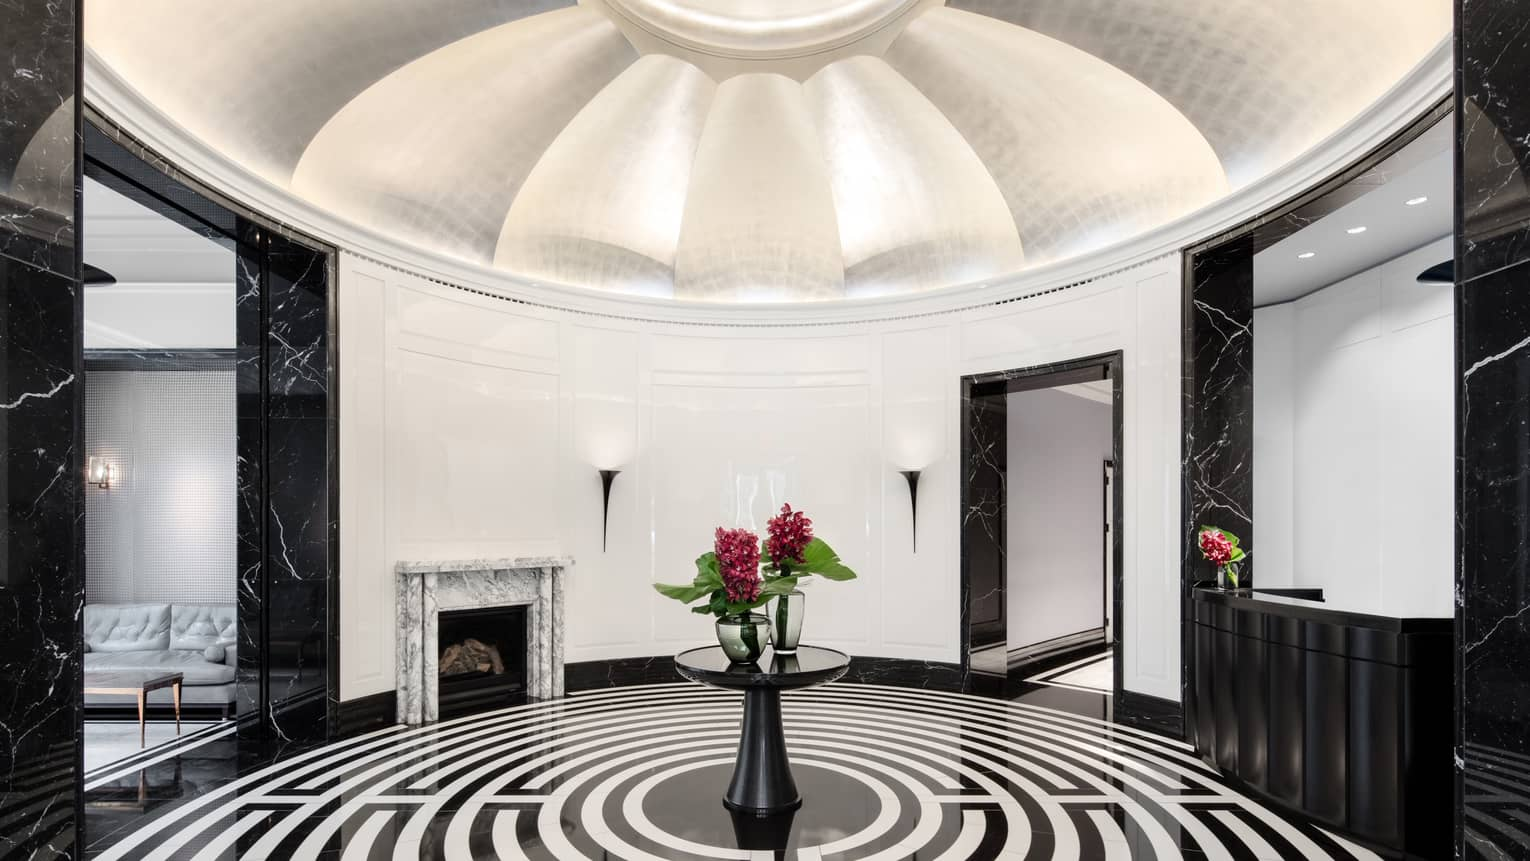 Dramatic white dome ceiling over rotunda with black-and-white maze flooring, red flowers on table